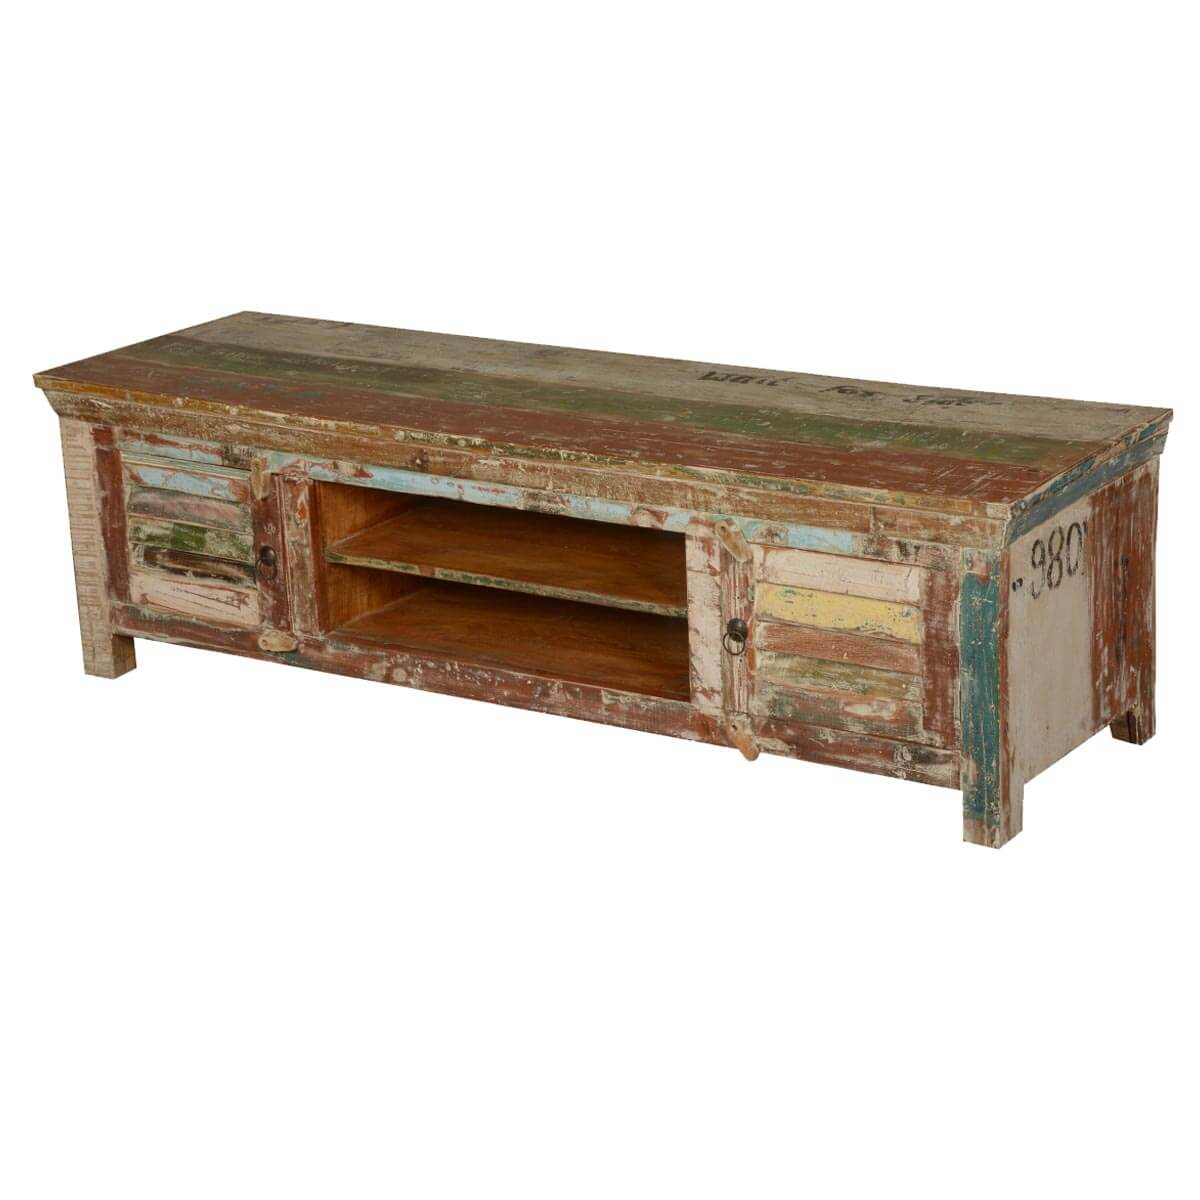 Shoreham Rustic Reclaimed Wood Open Shelf Shutter Door Media TV Stand